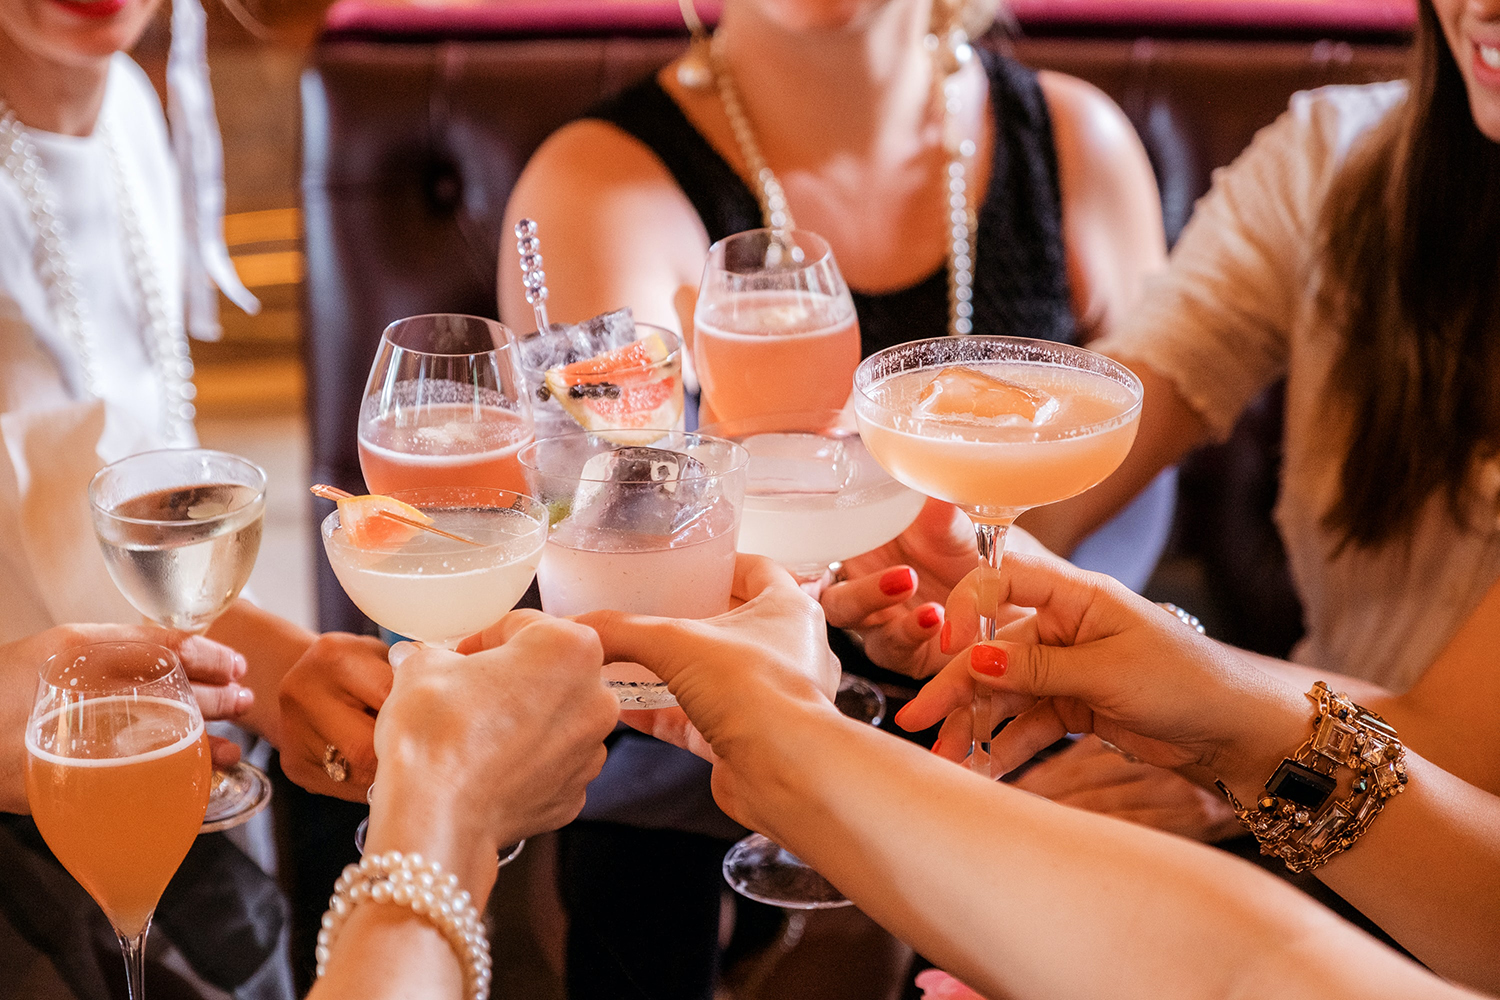 Group of people cheersing with cocktails, Is alcohol a trigger for IBS